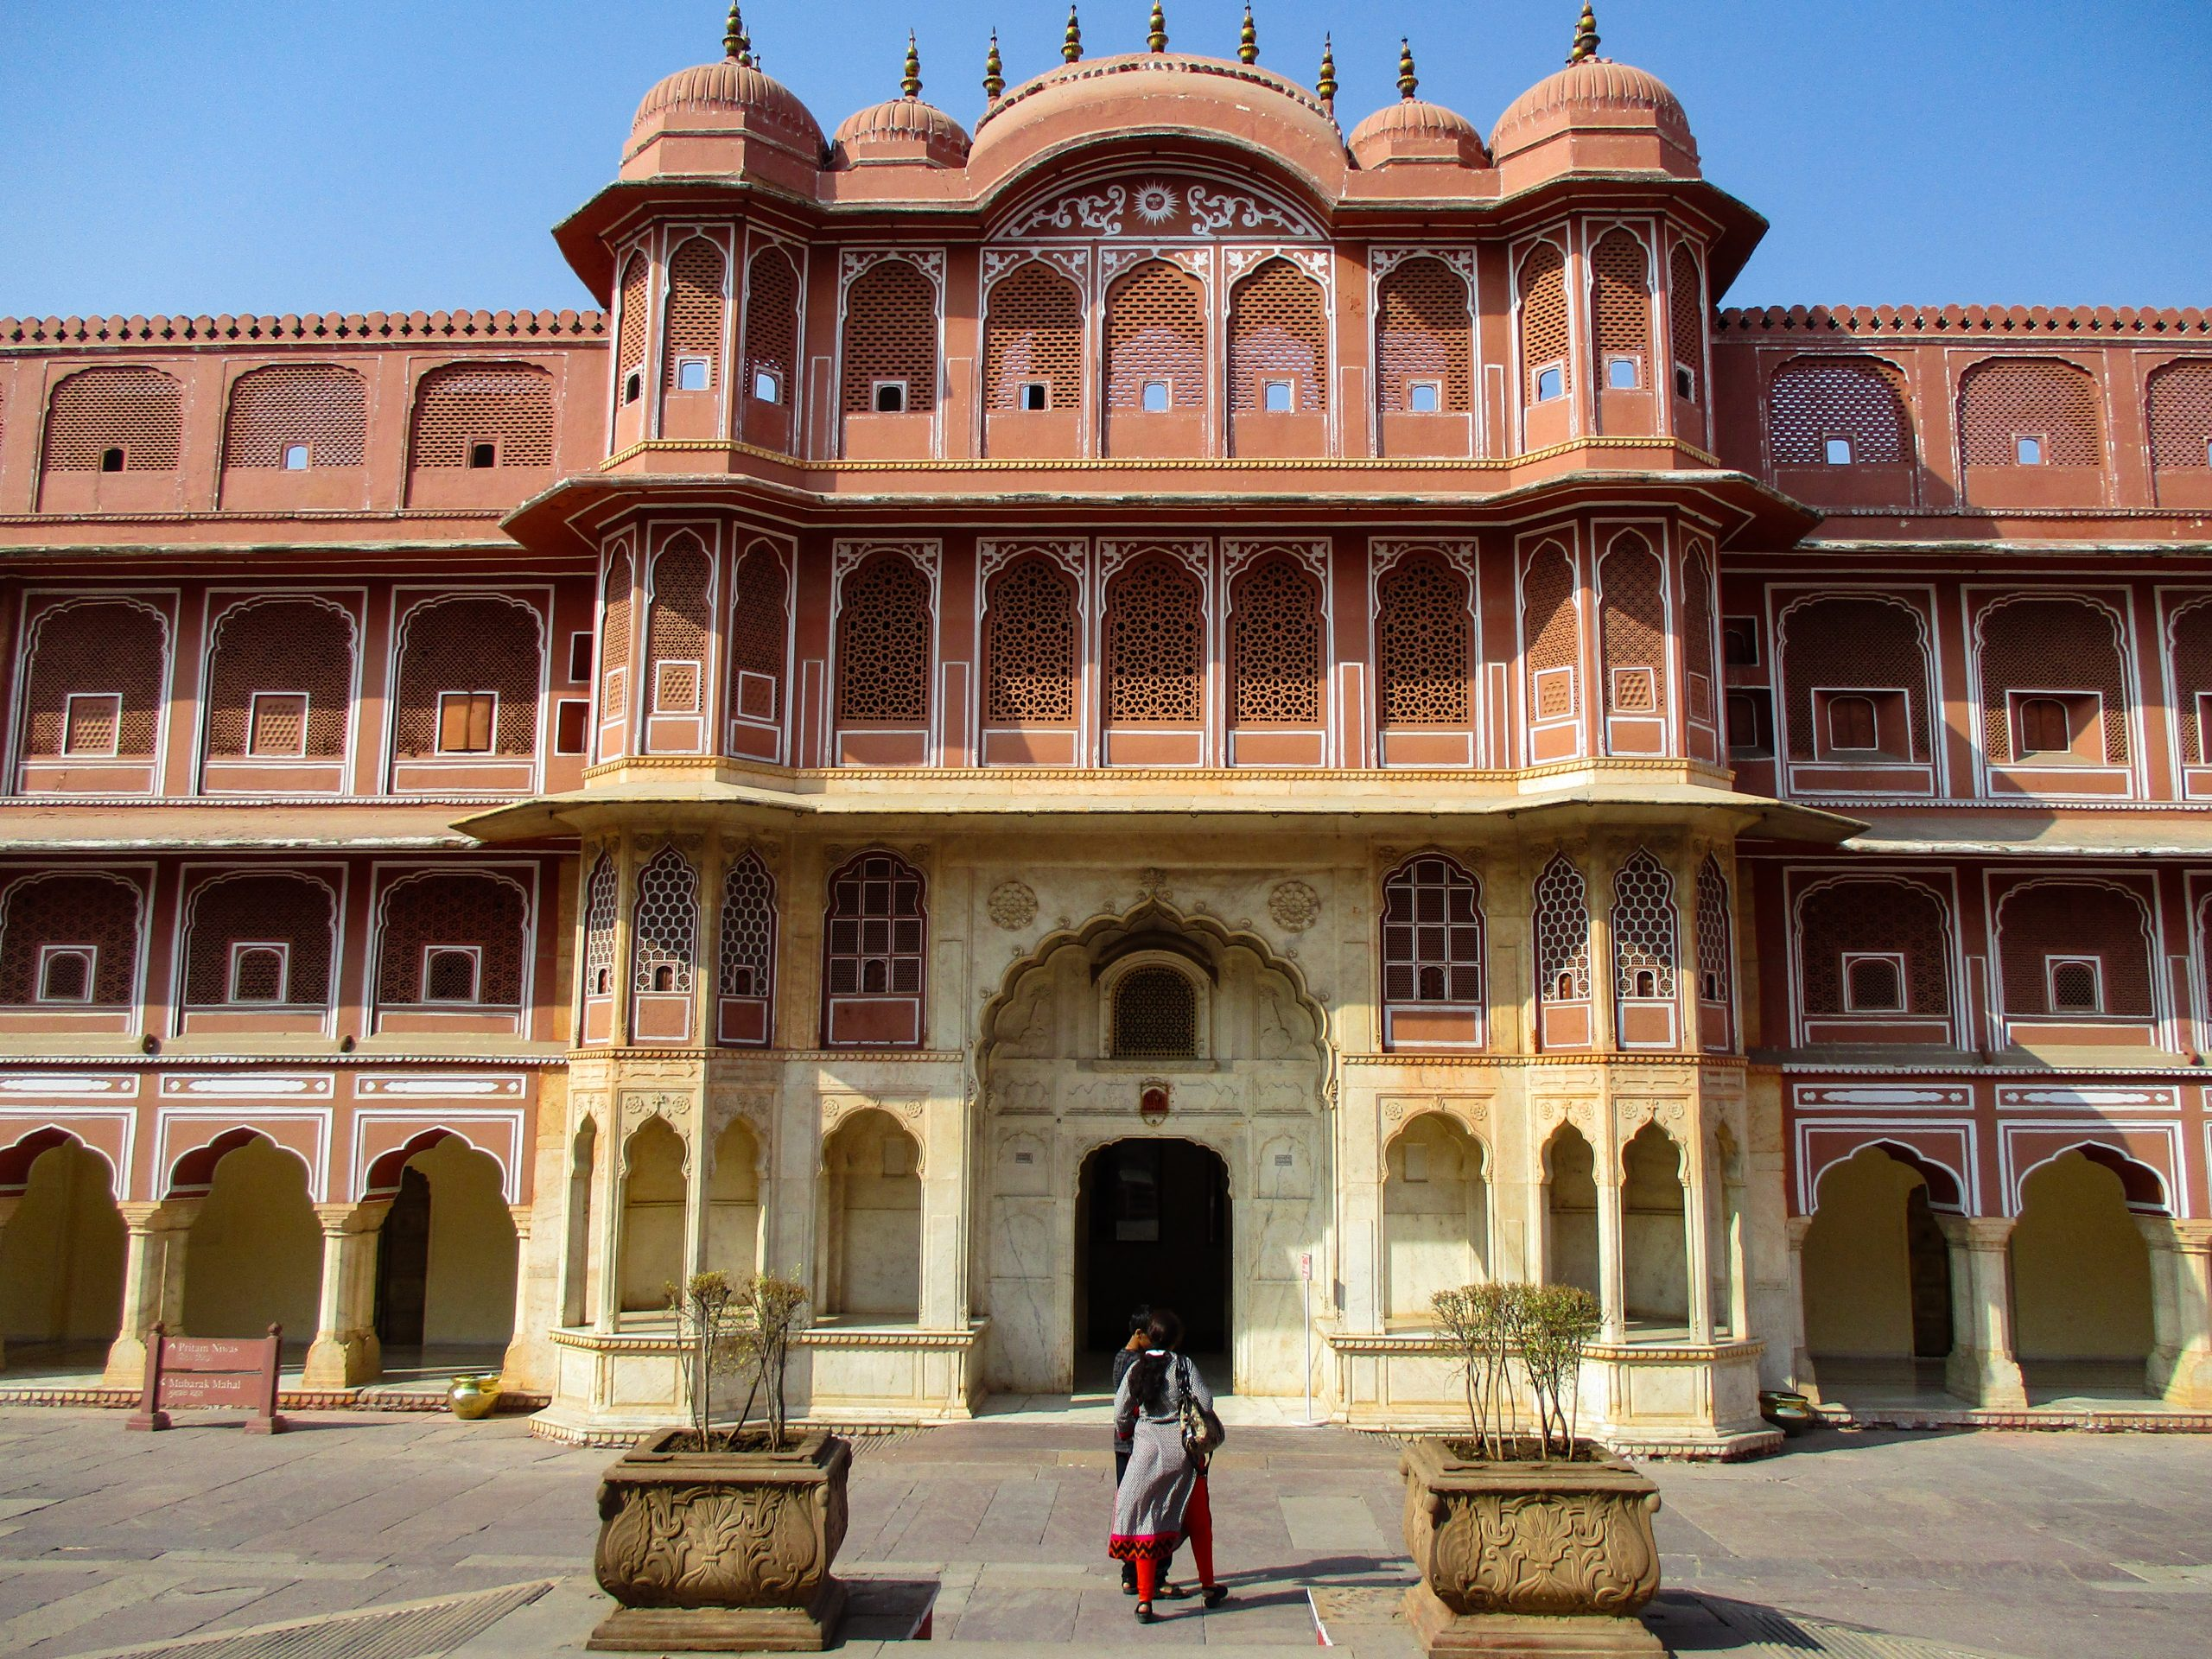 Hawa Mahal Palace in Jaipur, India